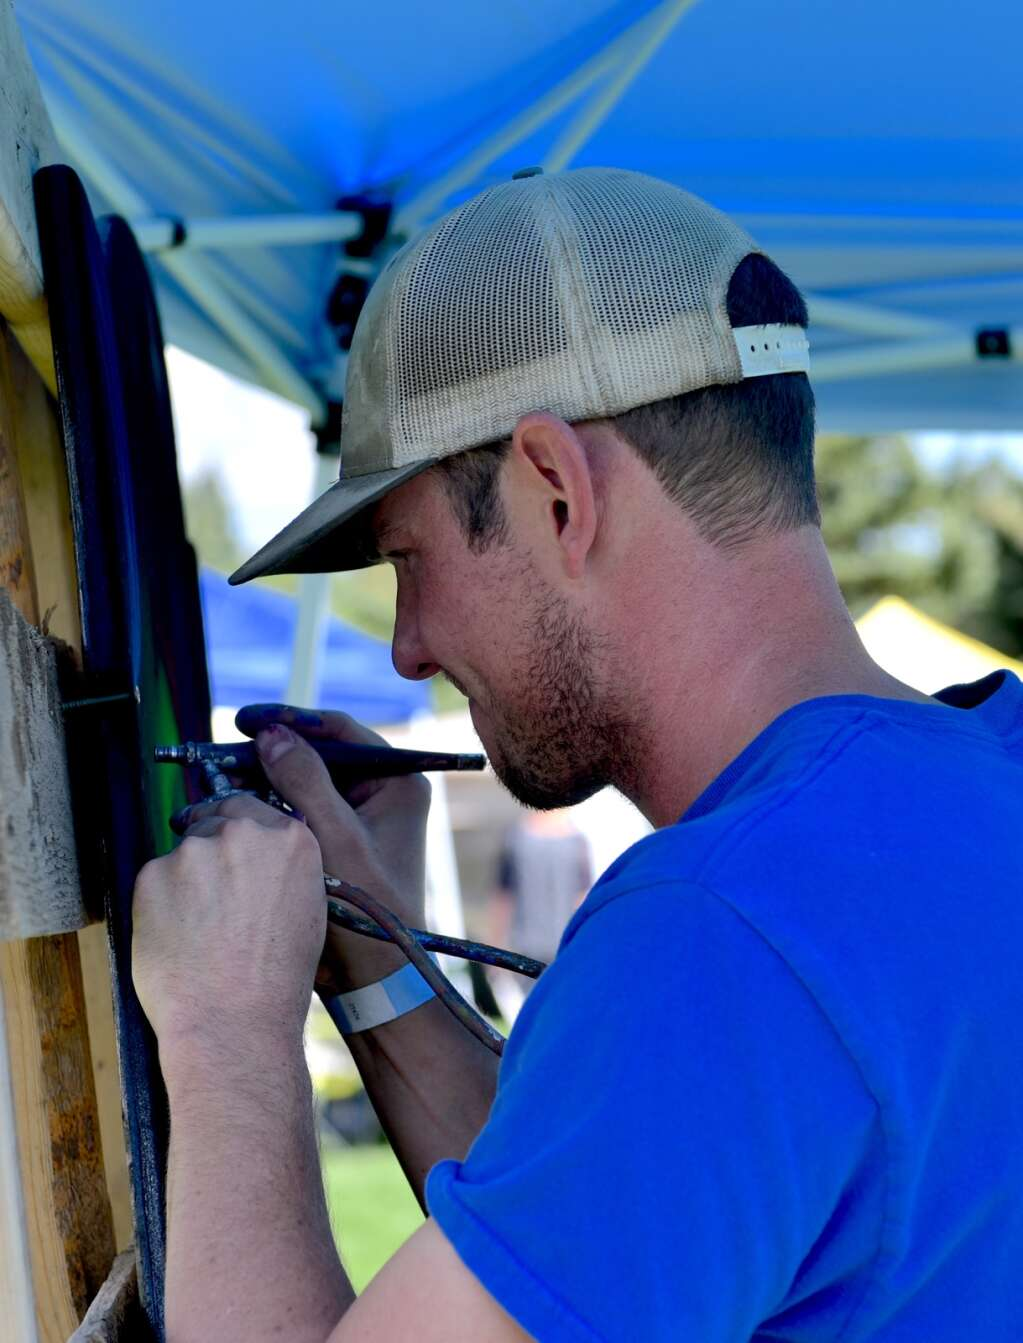 Andrew Midthun airbrushes his piece for Art in the Park on Saturday, Sept. 3, 2021, at Polhamus Park in Granby.   Amy Golden/Sky-Hi News